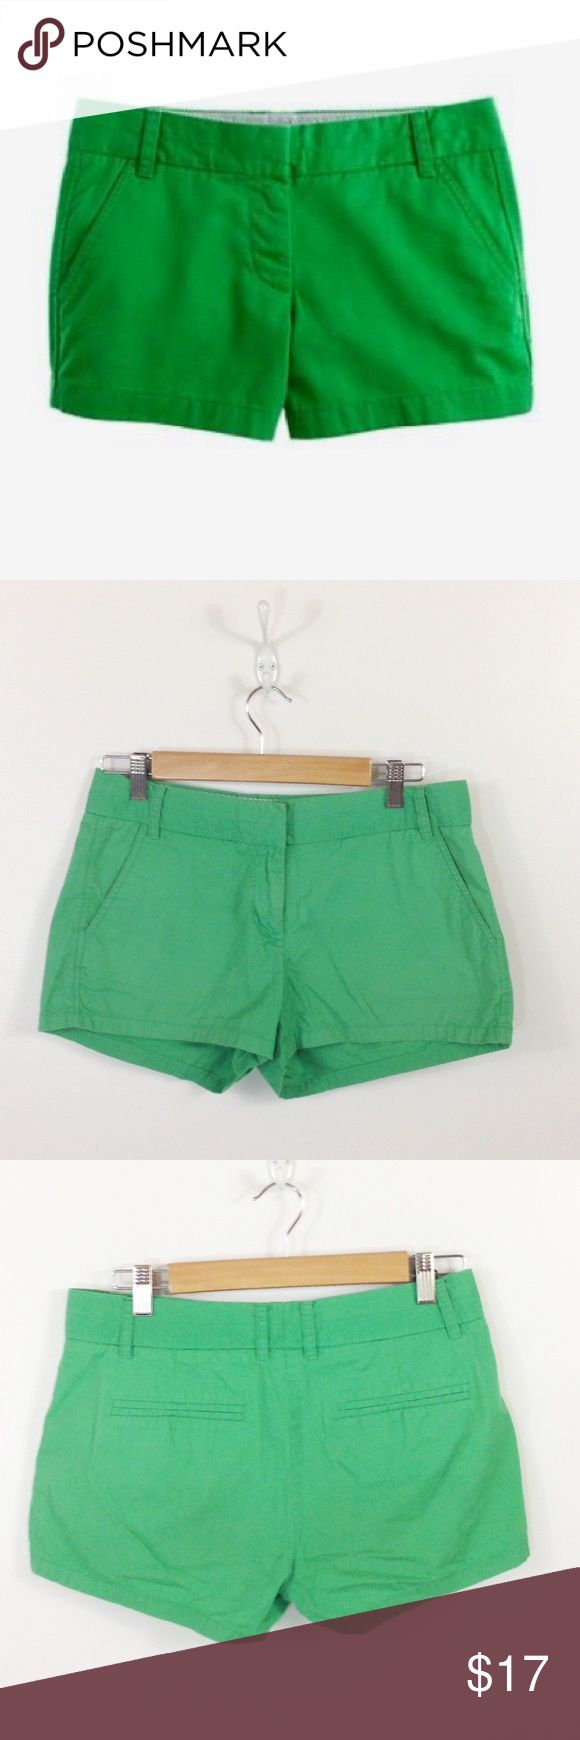 "👑NEW ARRIVAL J Crew 3"" Green Chino Shorts Bright Bright kelly green chino shorts from j crew factory. Very good condition with light wash wear. Fit true to size. J. Crew Factory Shorts"